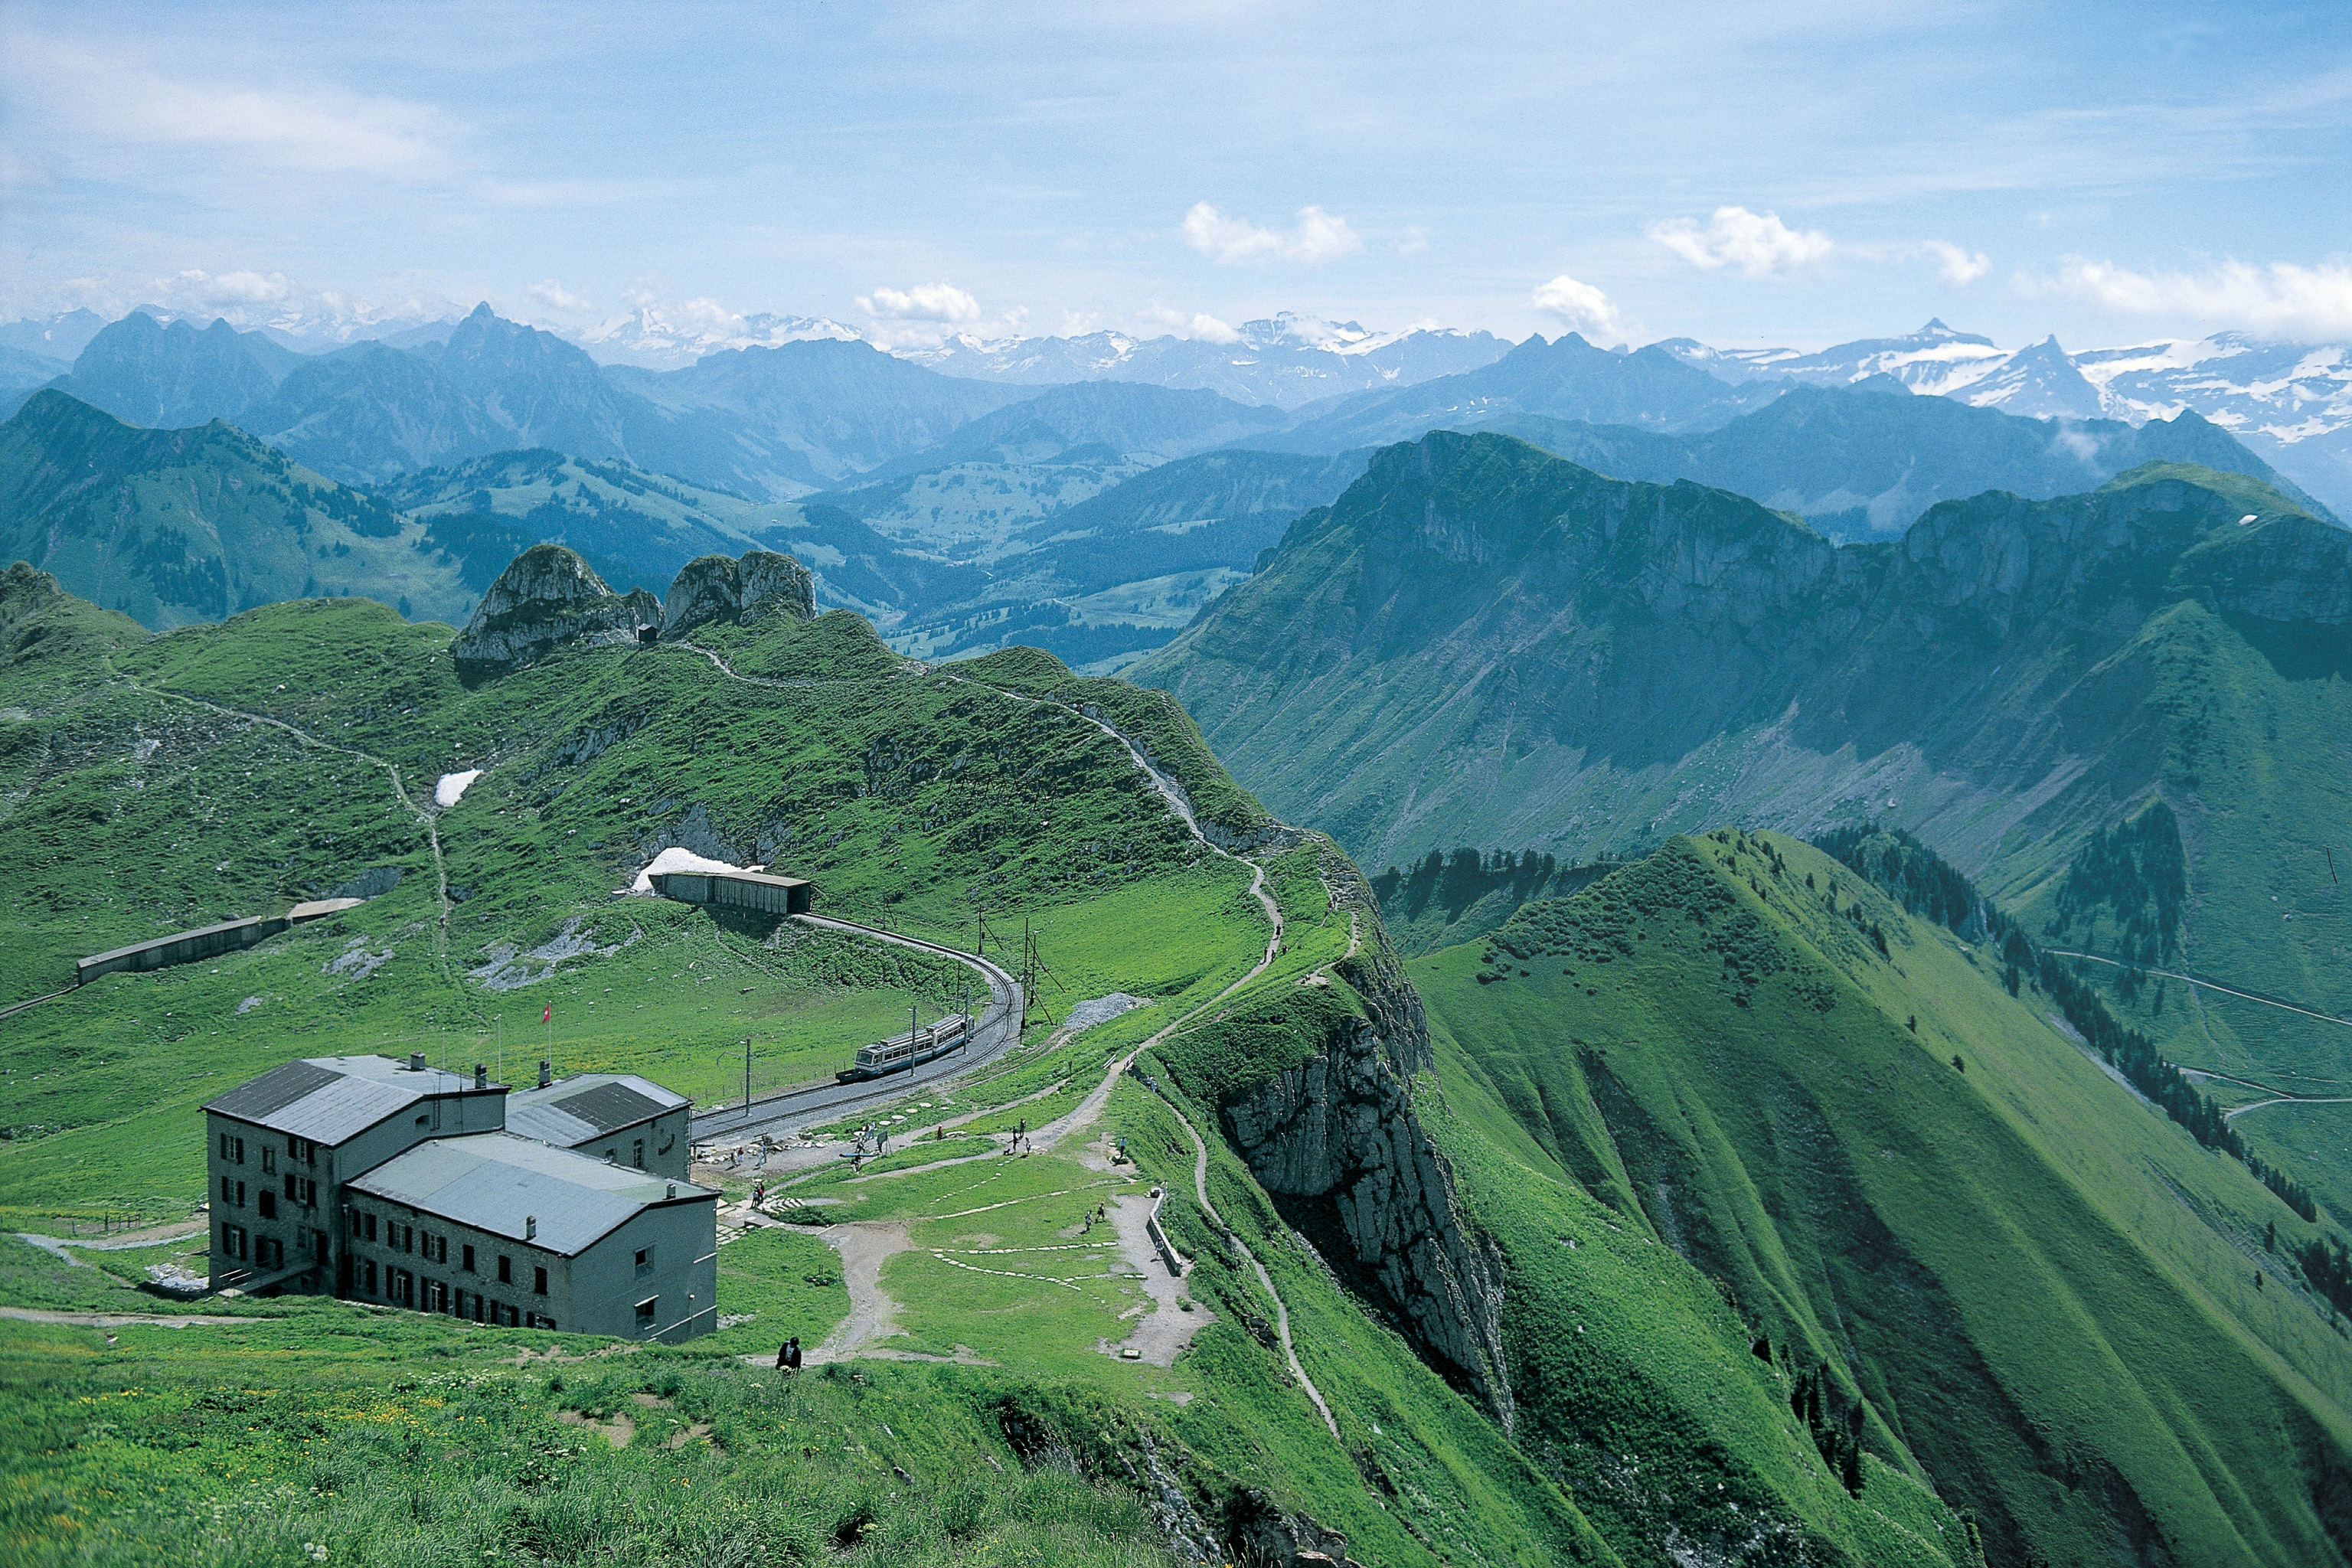 Rochers de Naye Rail Passes and Tickets for Switzerland.